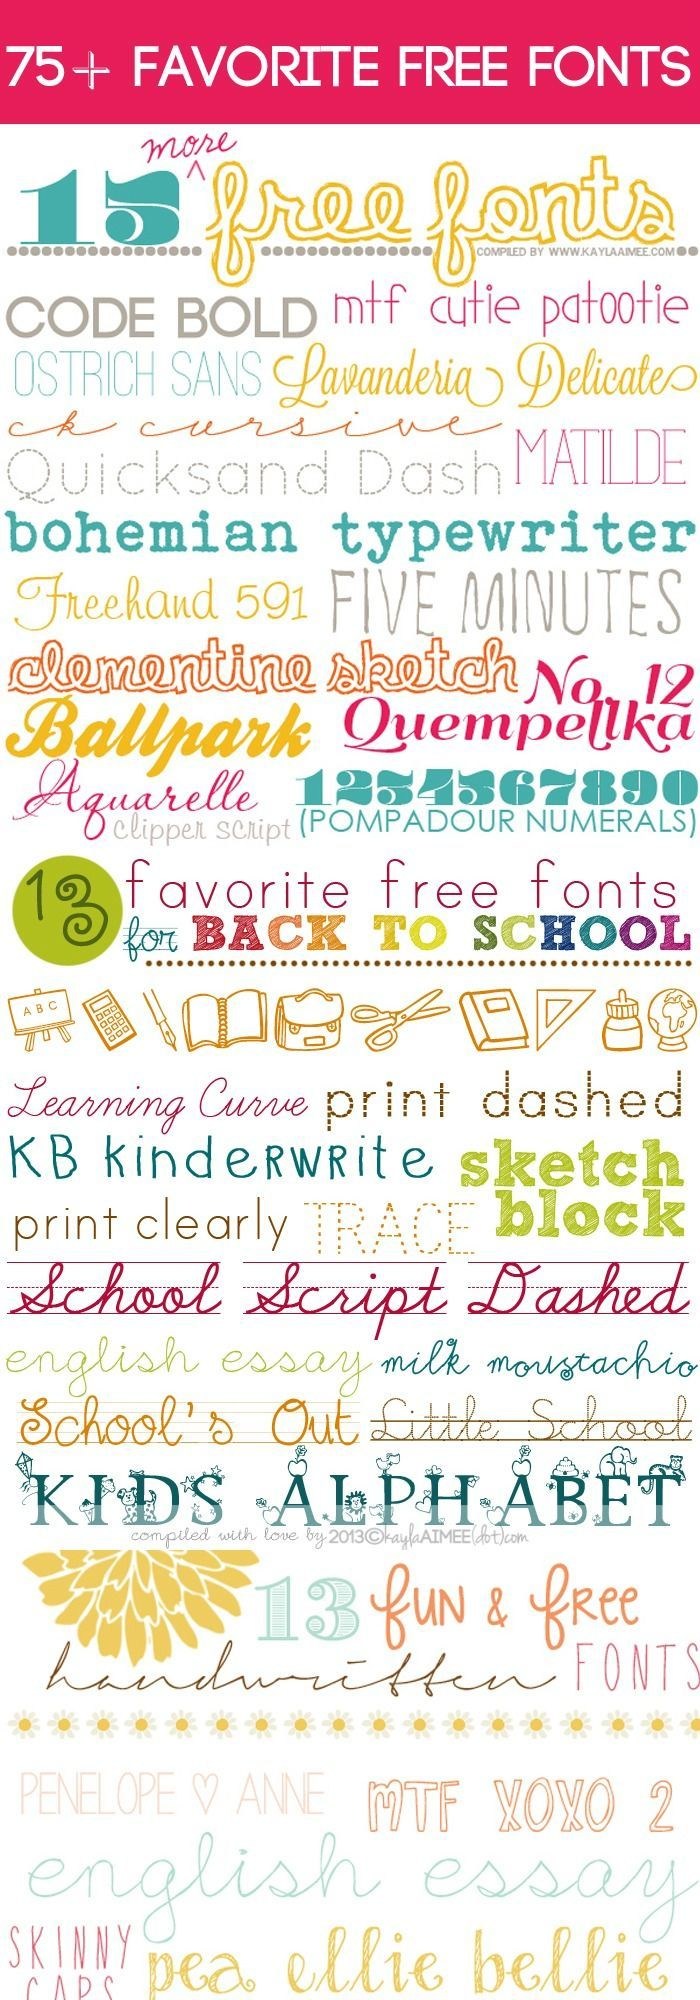 A Collection Of 75 Favorite Free Fonts Via Kayla Barkett Aimee Fun FontsFonts KidsSilhouette